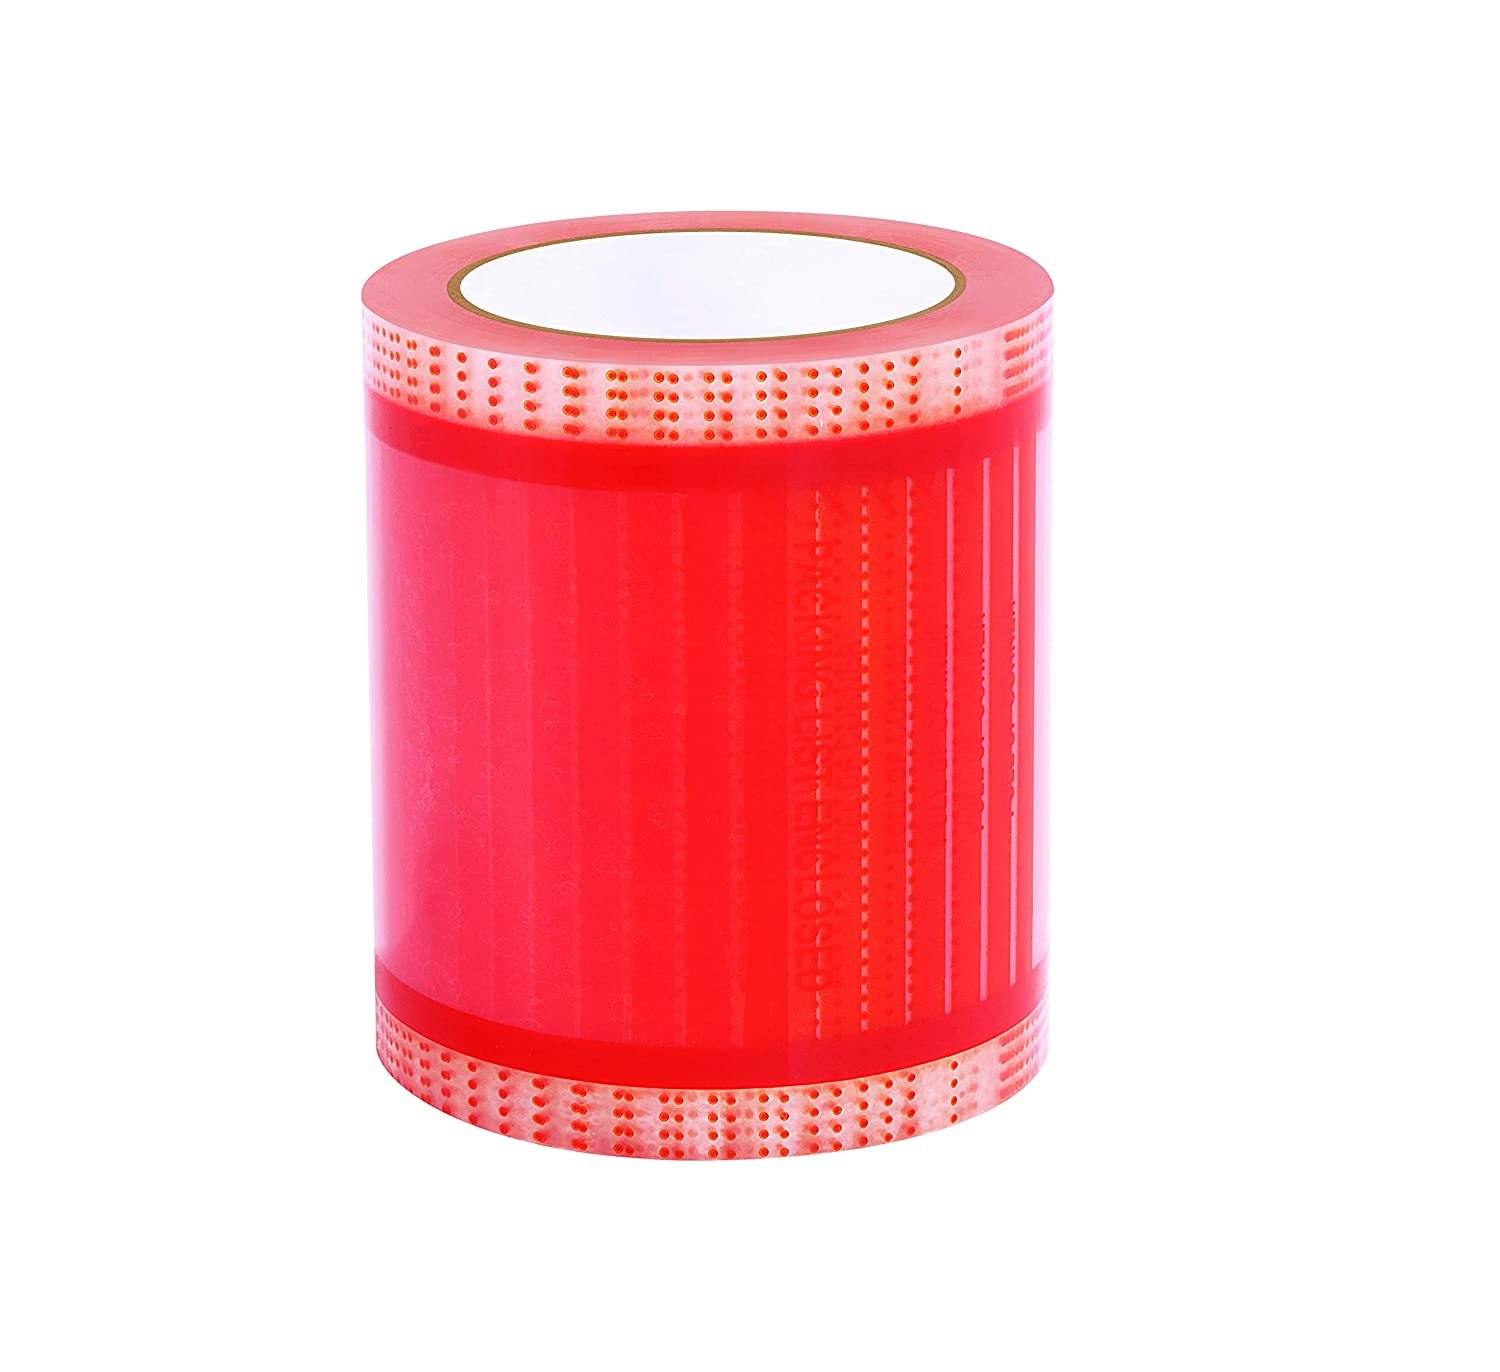 Pack of 12 Clear Tape Logic TLT922750 Pouch Tape Rolls 5 x 6